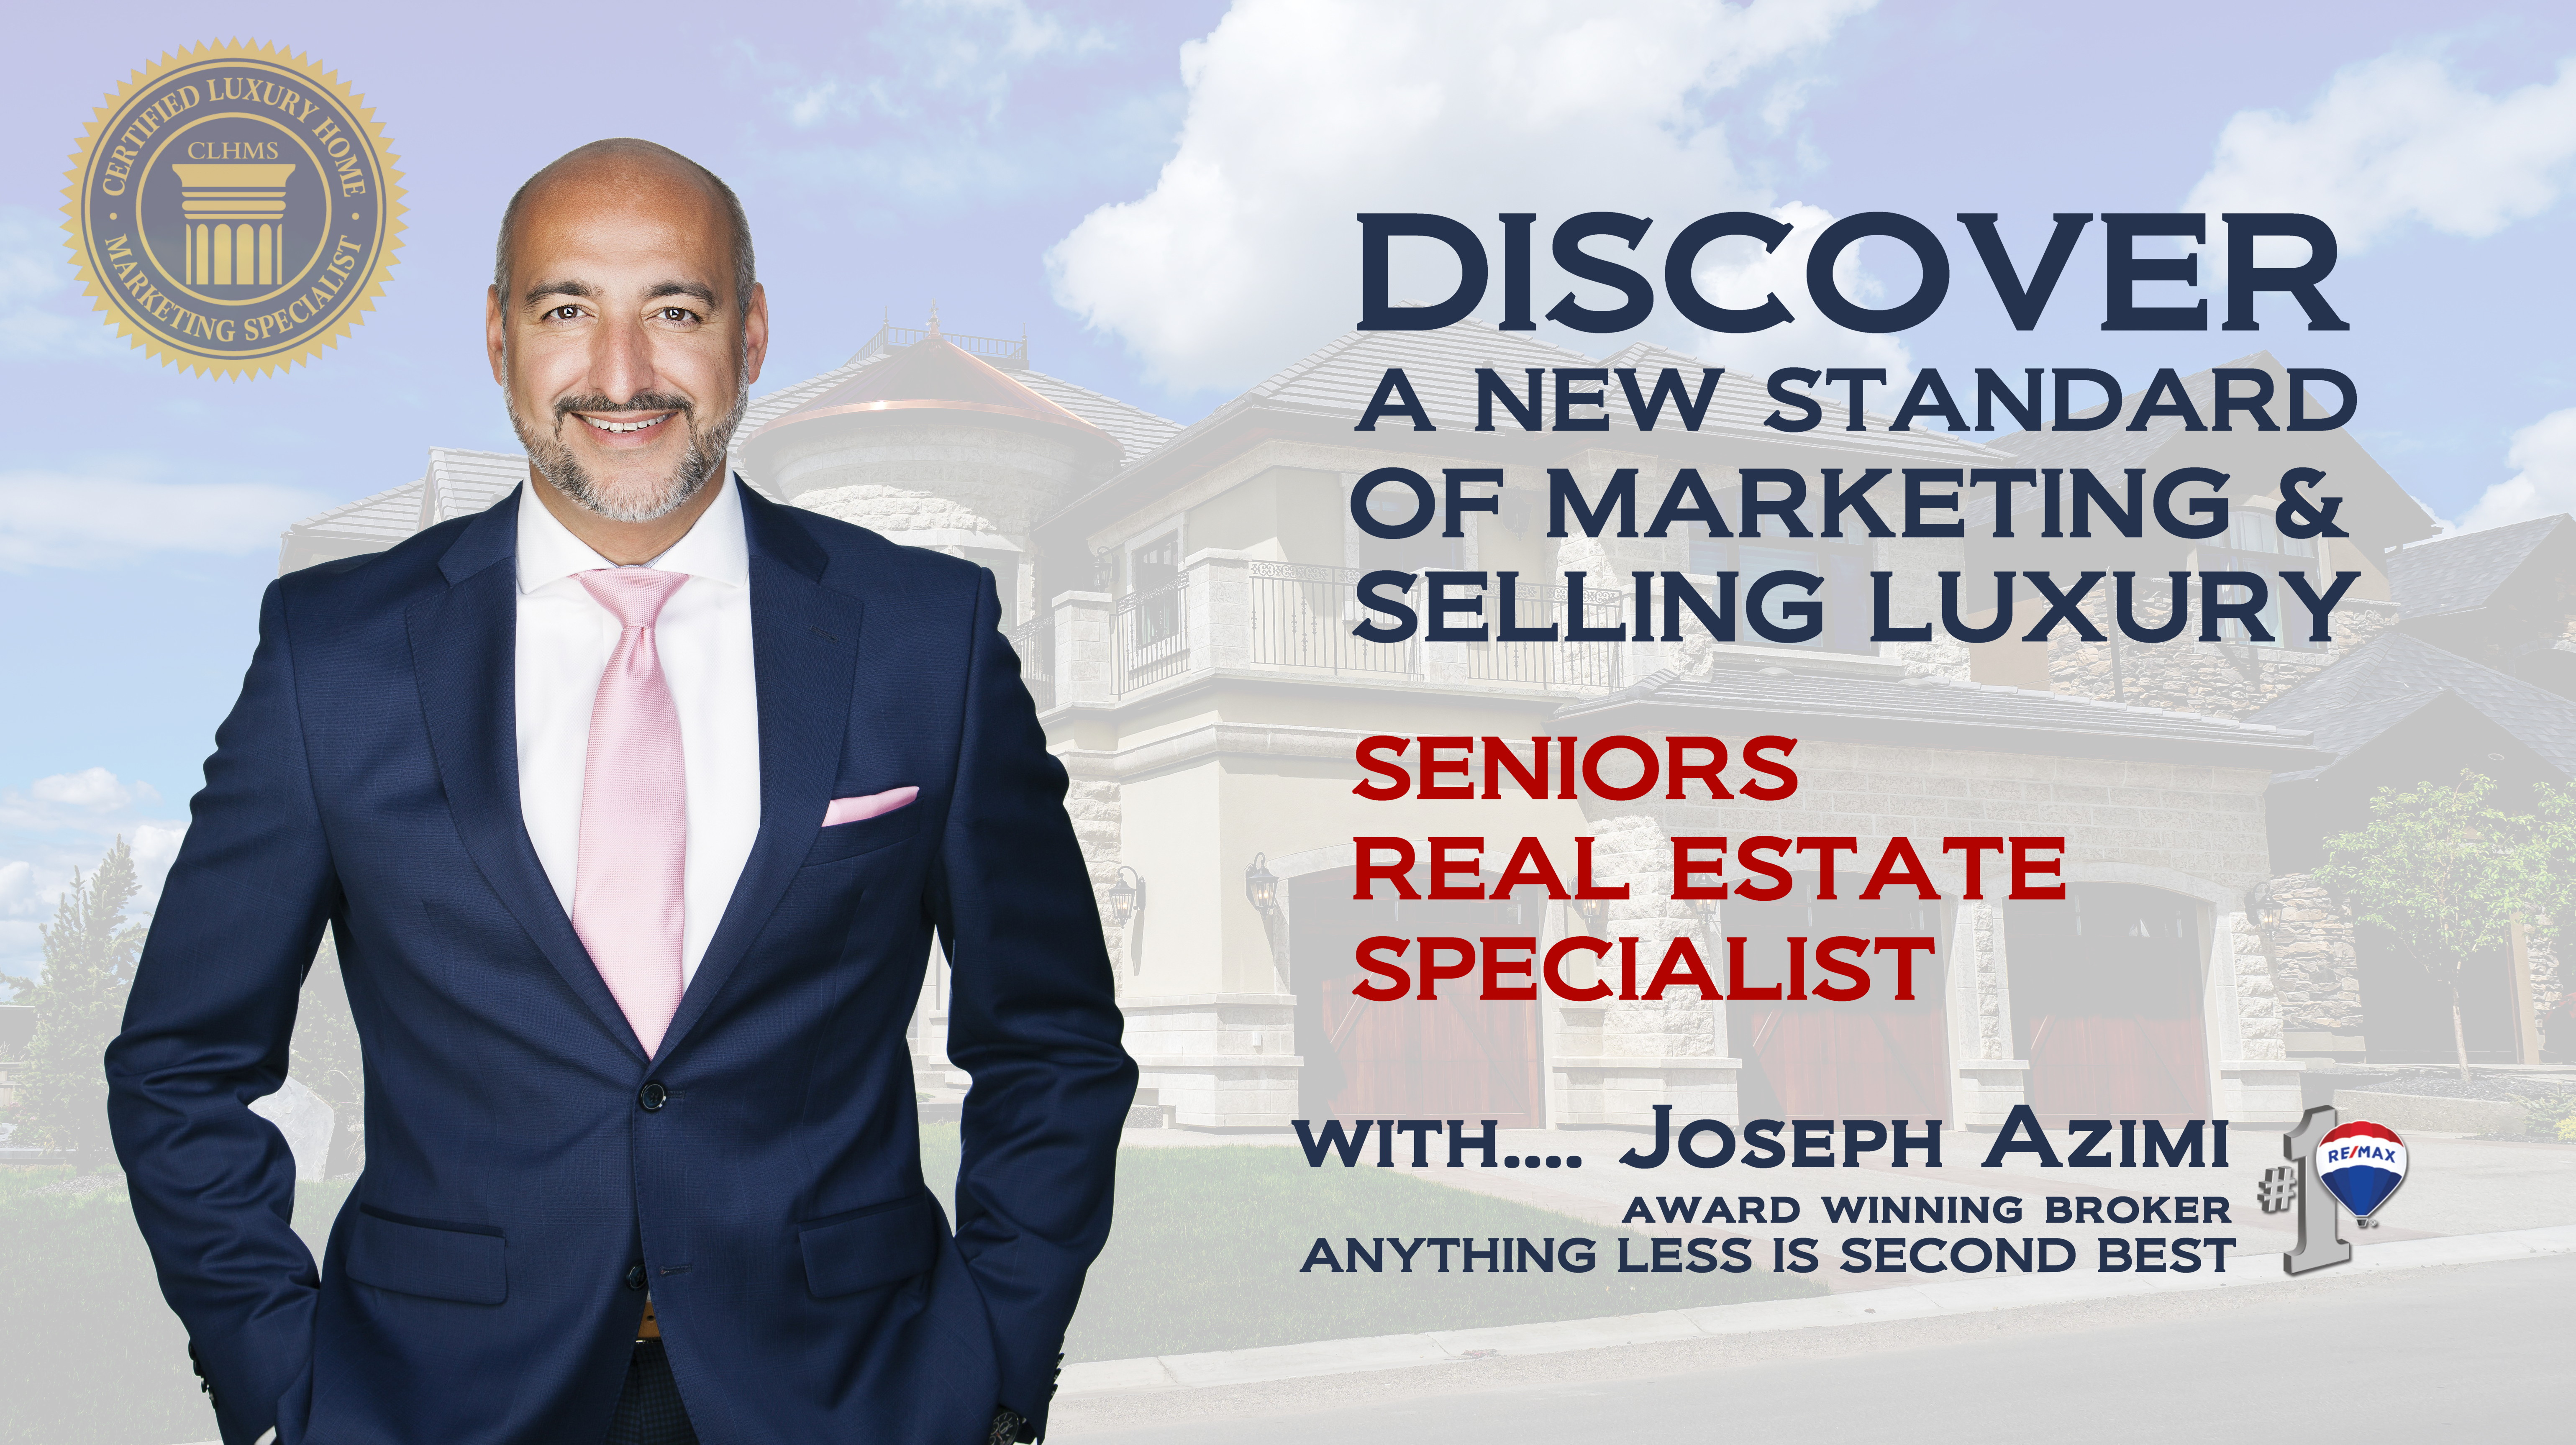 JOSEPH AZIMI - TOP SENIORS REAL ESTATE SPECIALIST IN TORONTO, VAUGHAN, KLIENBURG, OAKVILLE